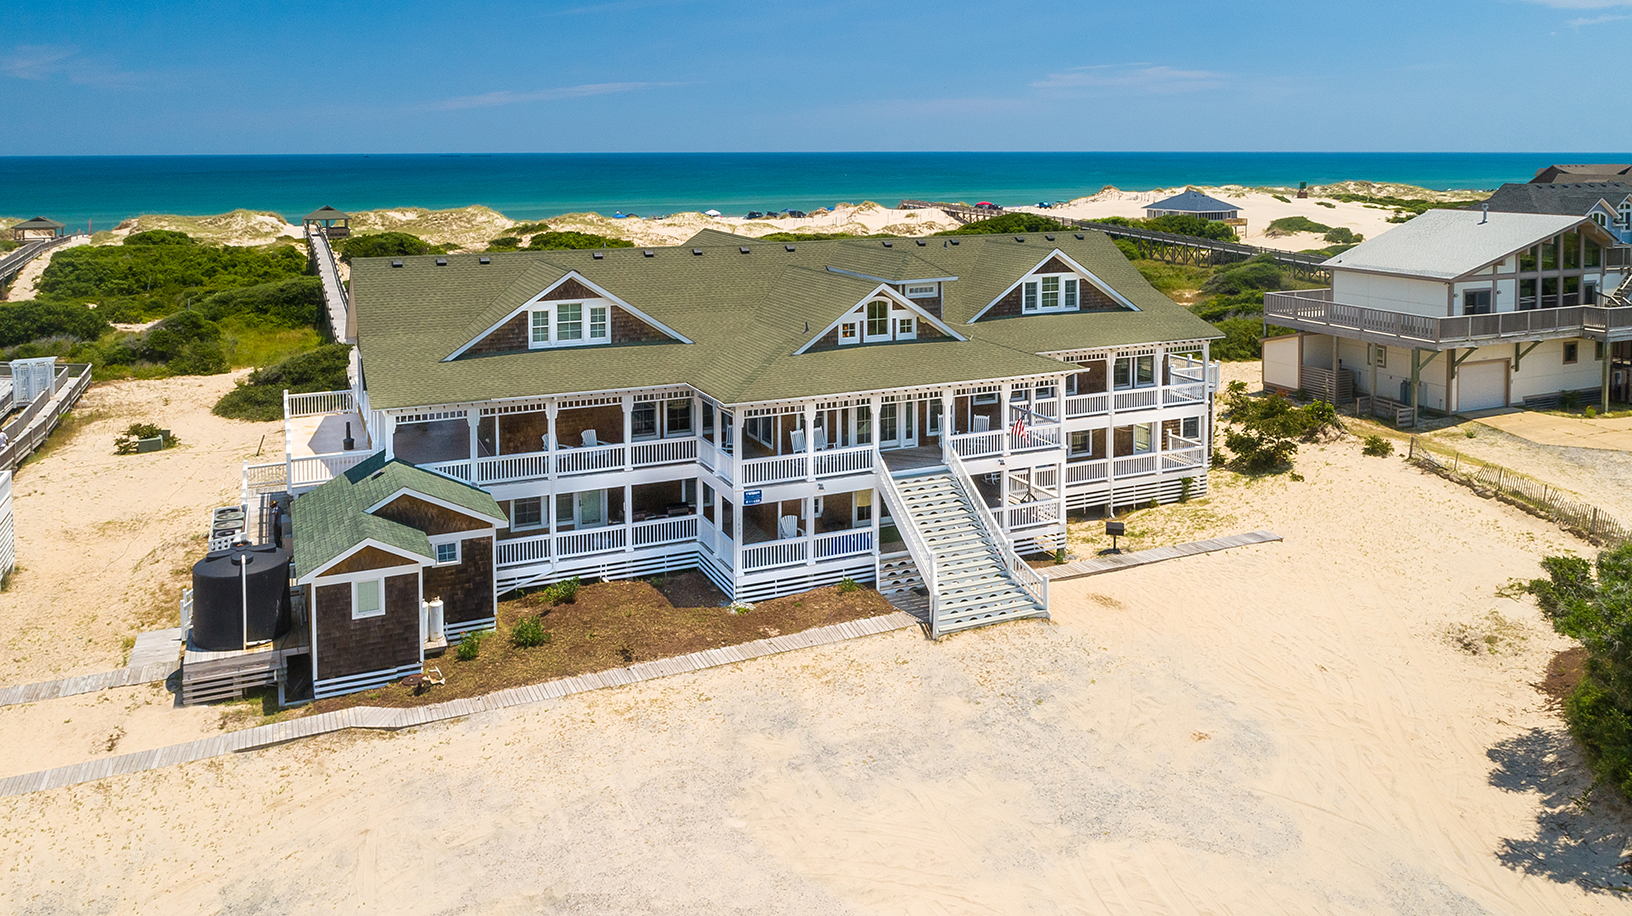 rentals the beach outer banks company rental cottage ocean hemingway aerialext vacation twiddy